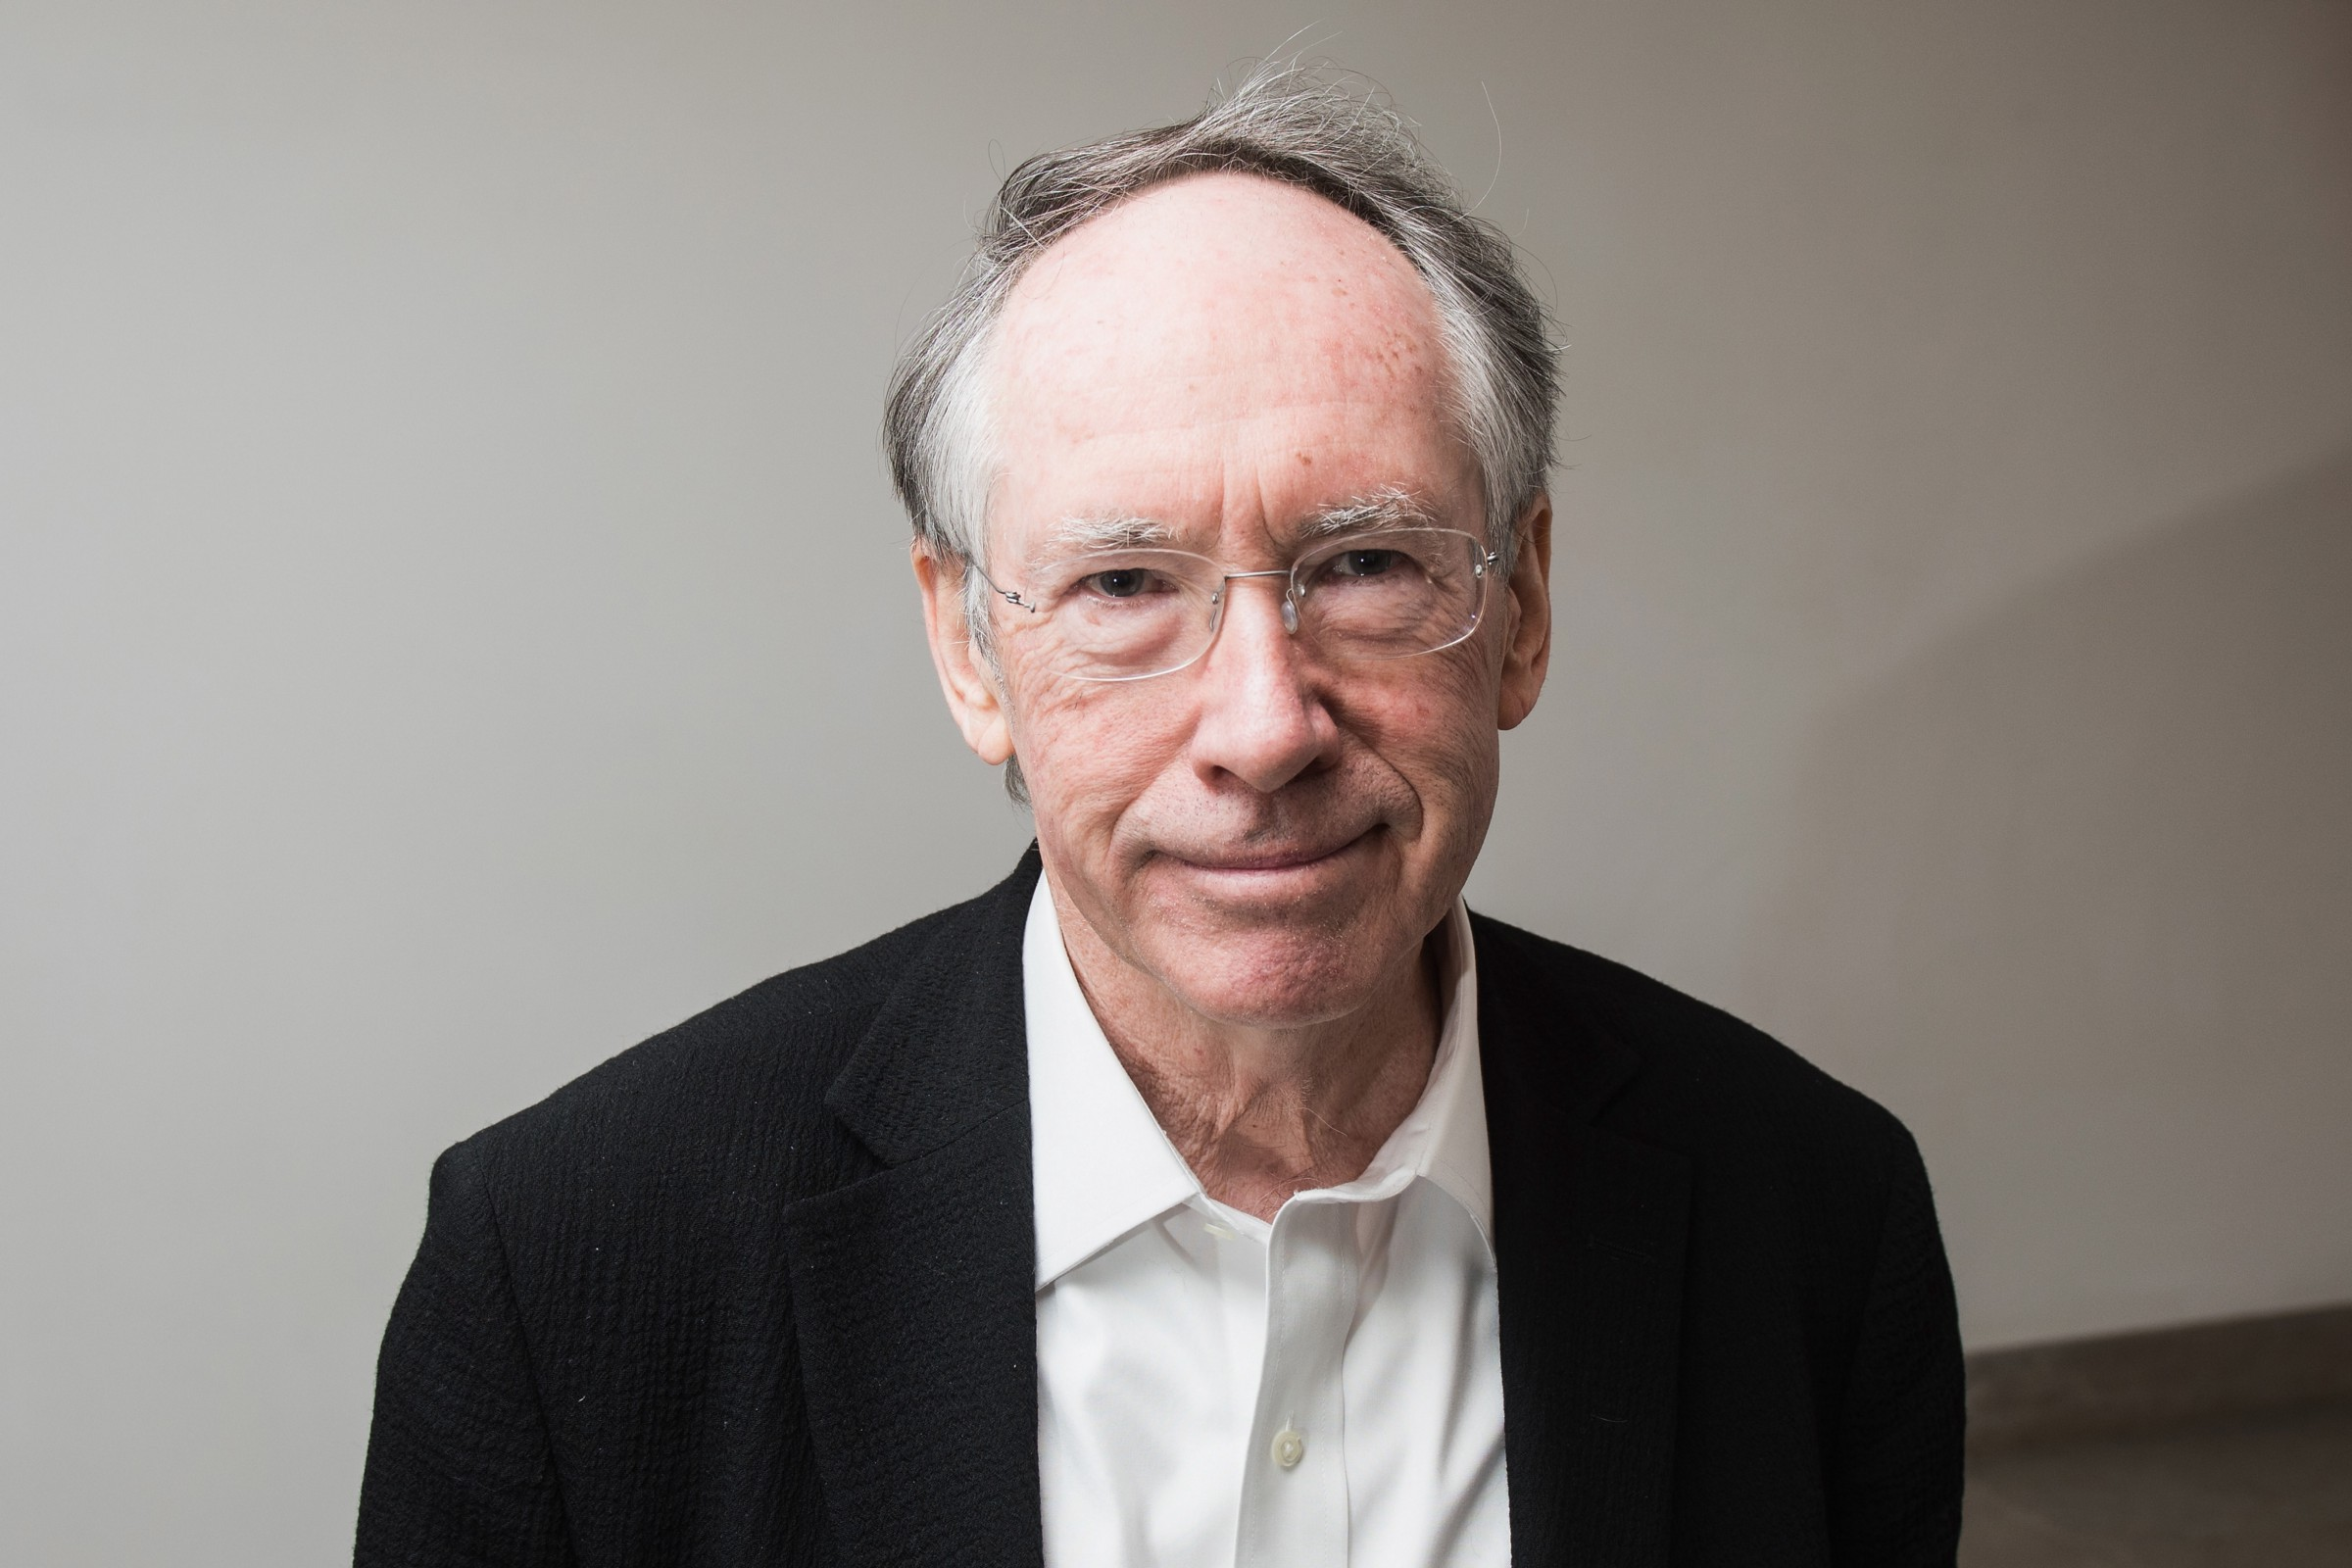 Ian McEwan on His New Novel and Ethics in the Age of A.I.